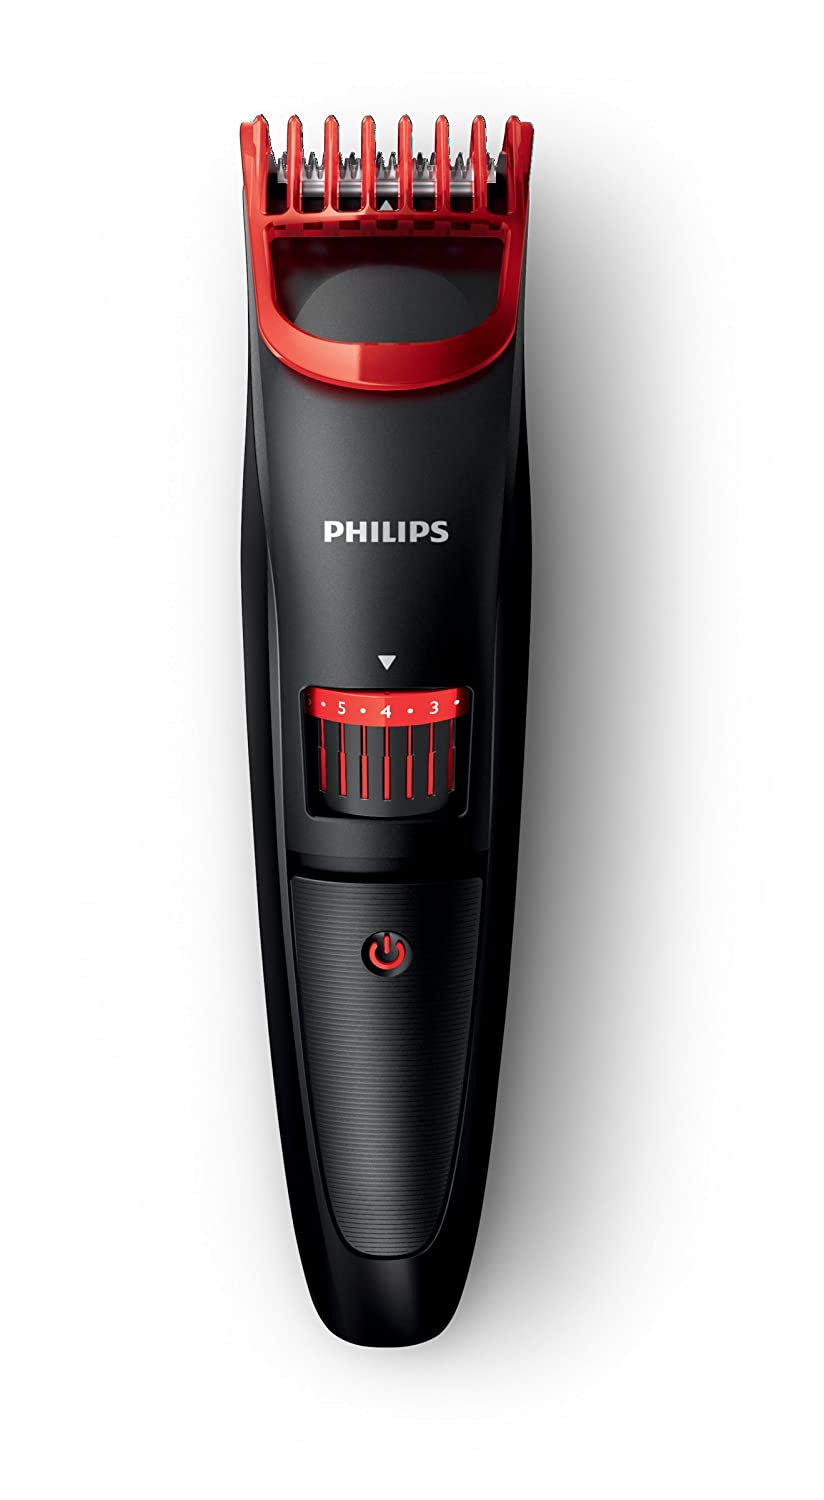 Confronto philips bt5200 e philips bt405: Philips BT405